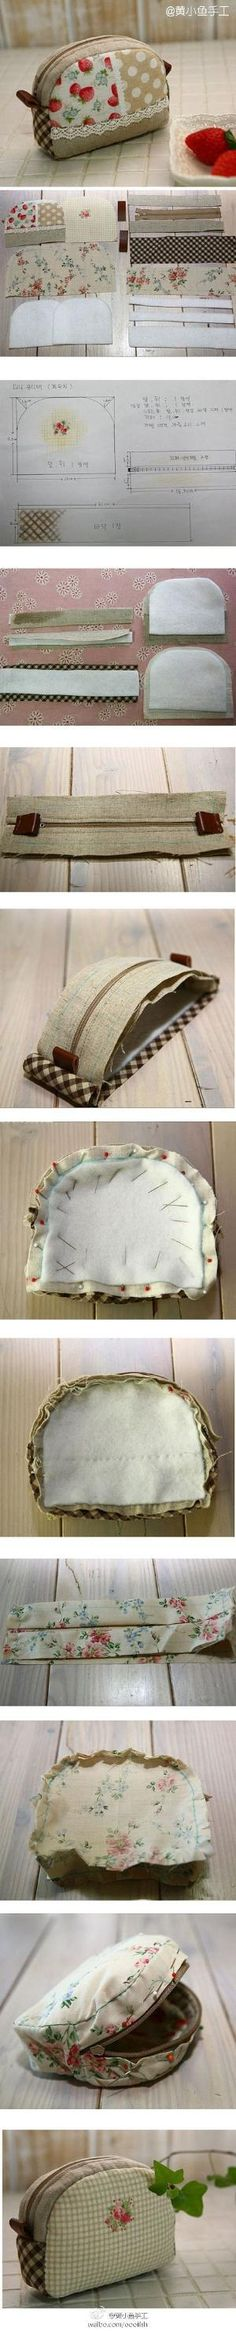 Cute pouch photo tutorial. by Anu Leppänen